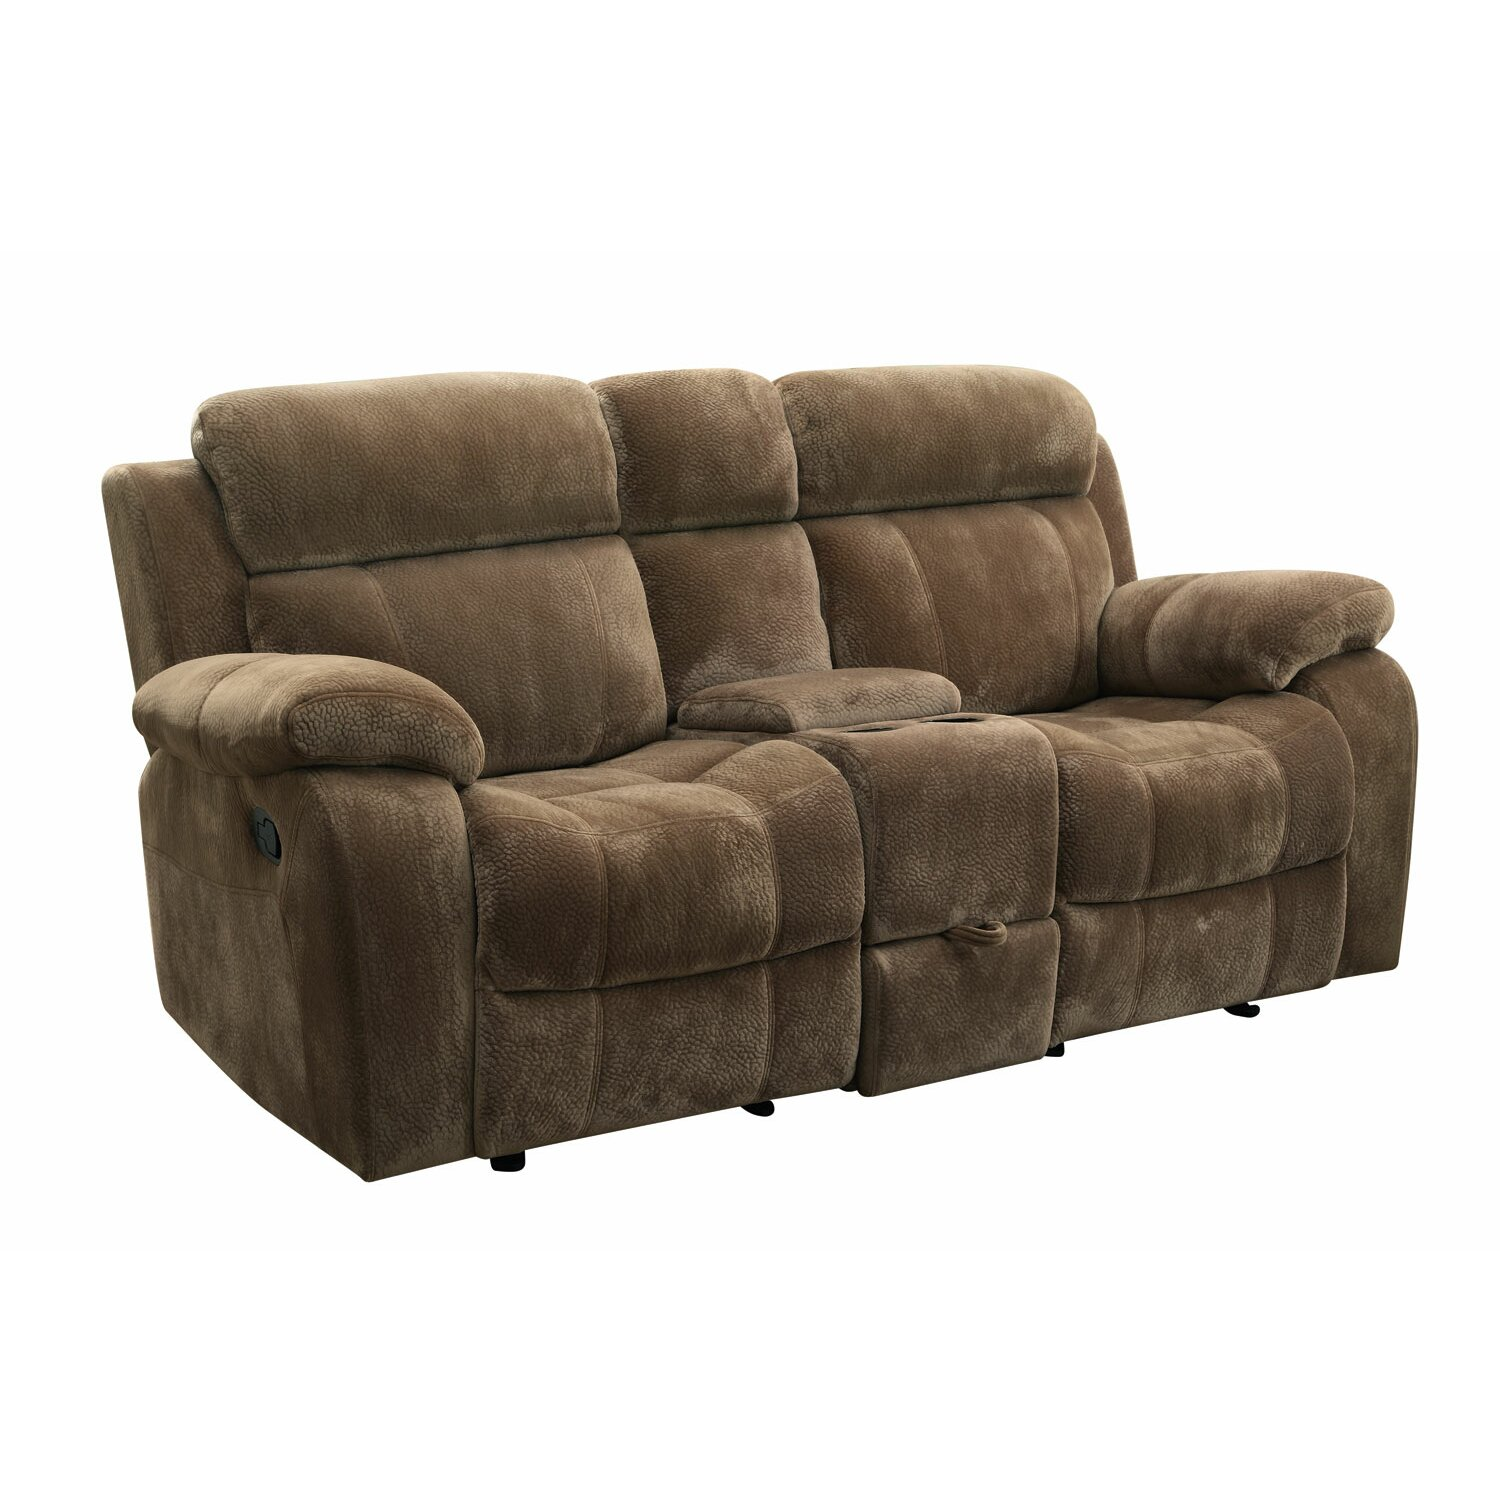 Wildon Home ® Victor Double Reclining Loveseat & Reviews ...